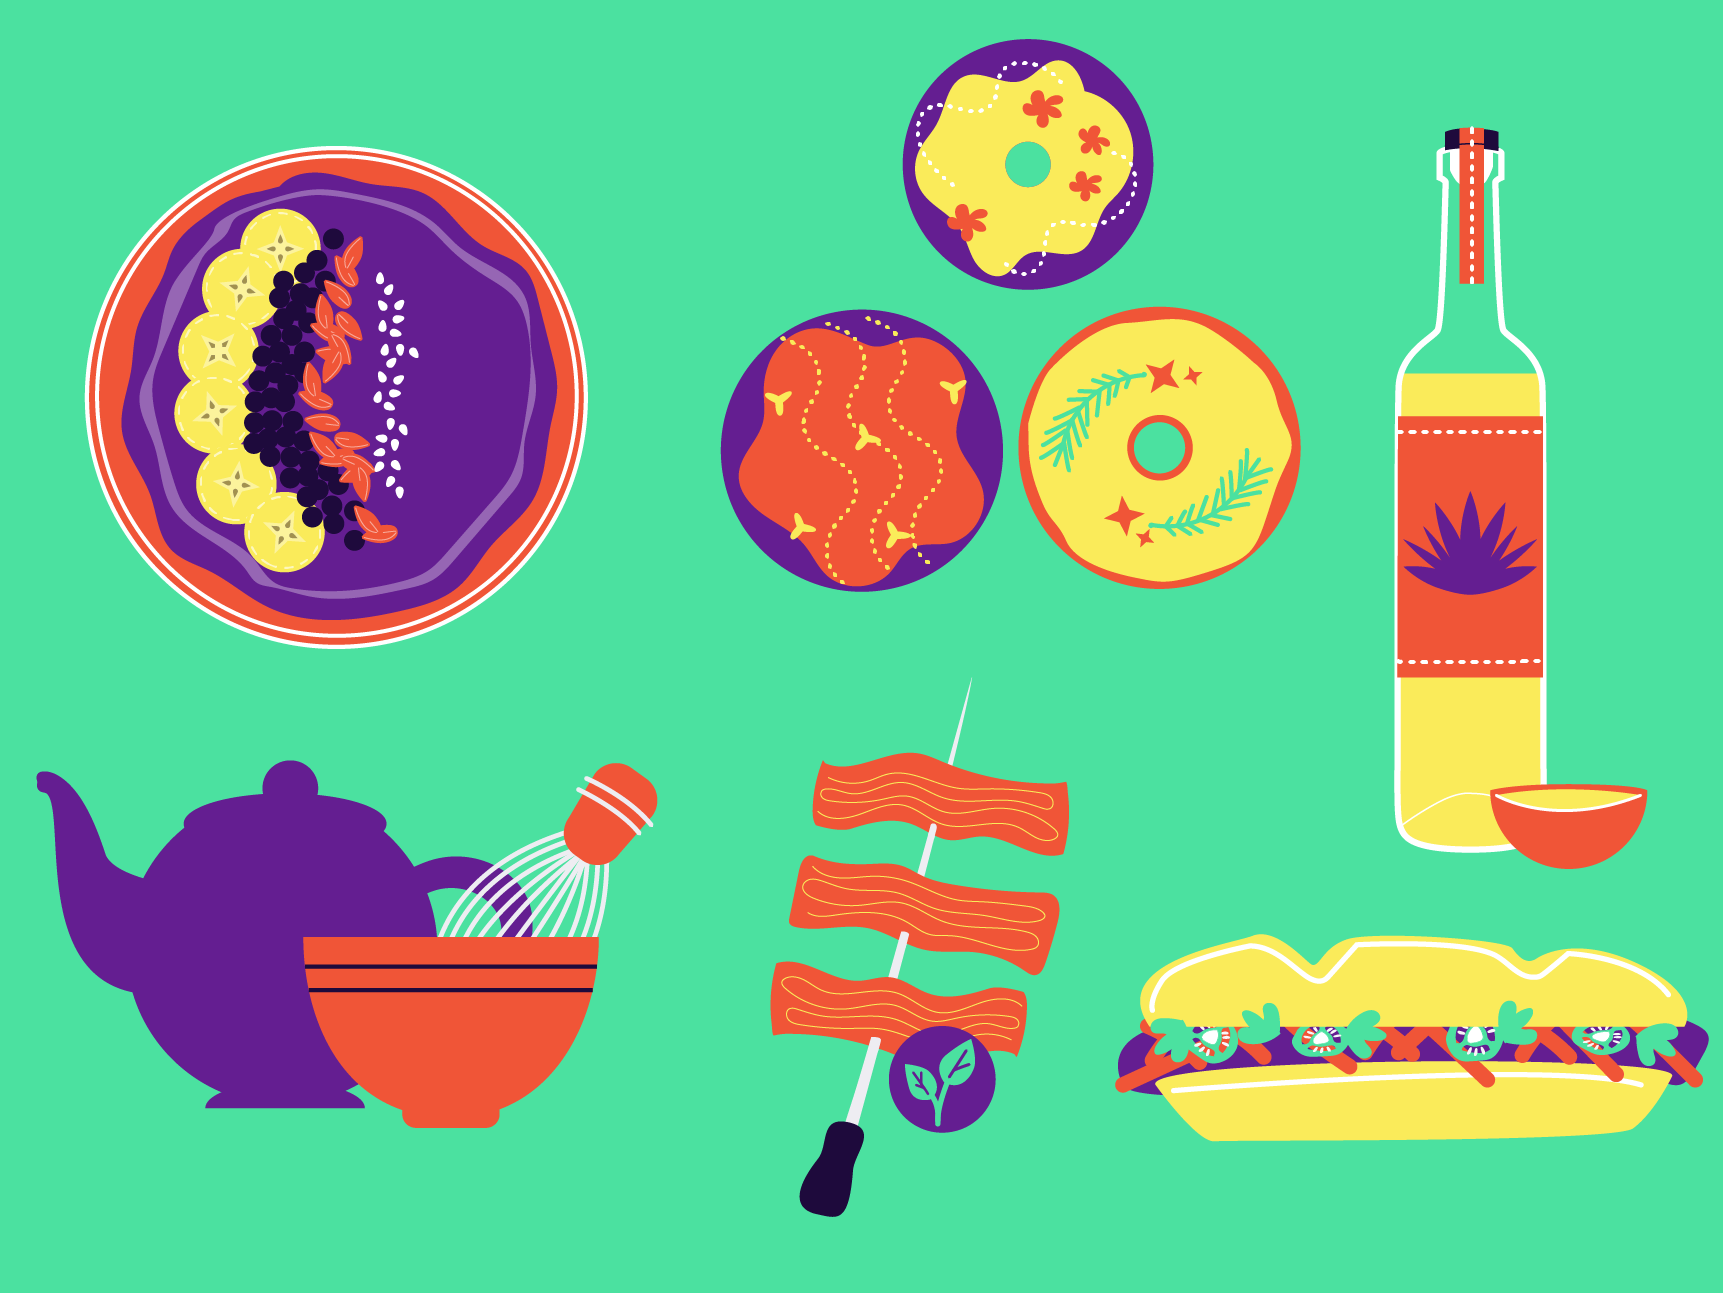 Foodies_weirdfood-01.png